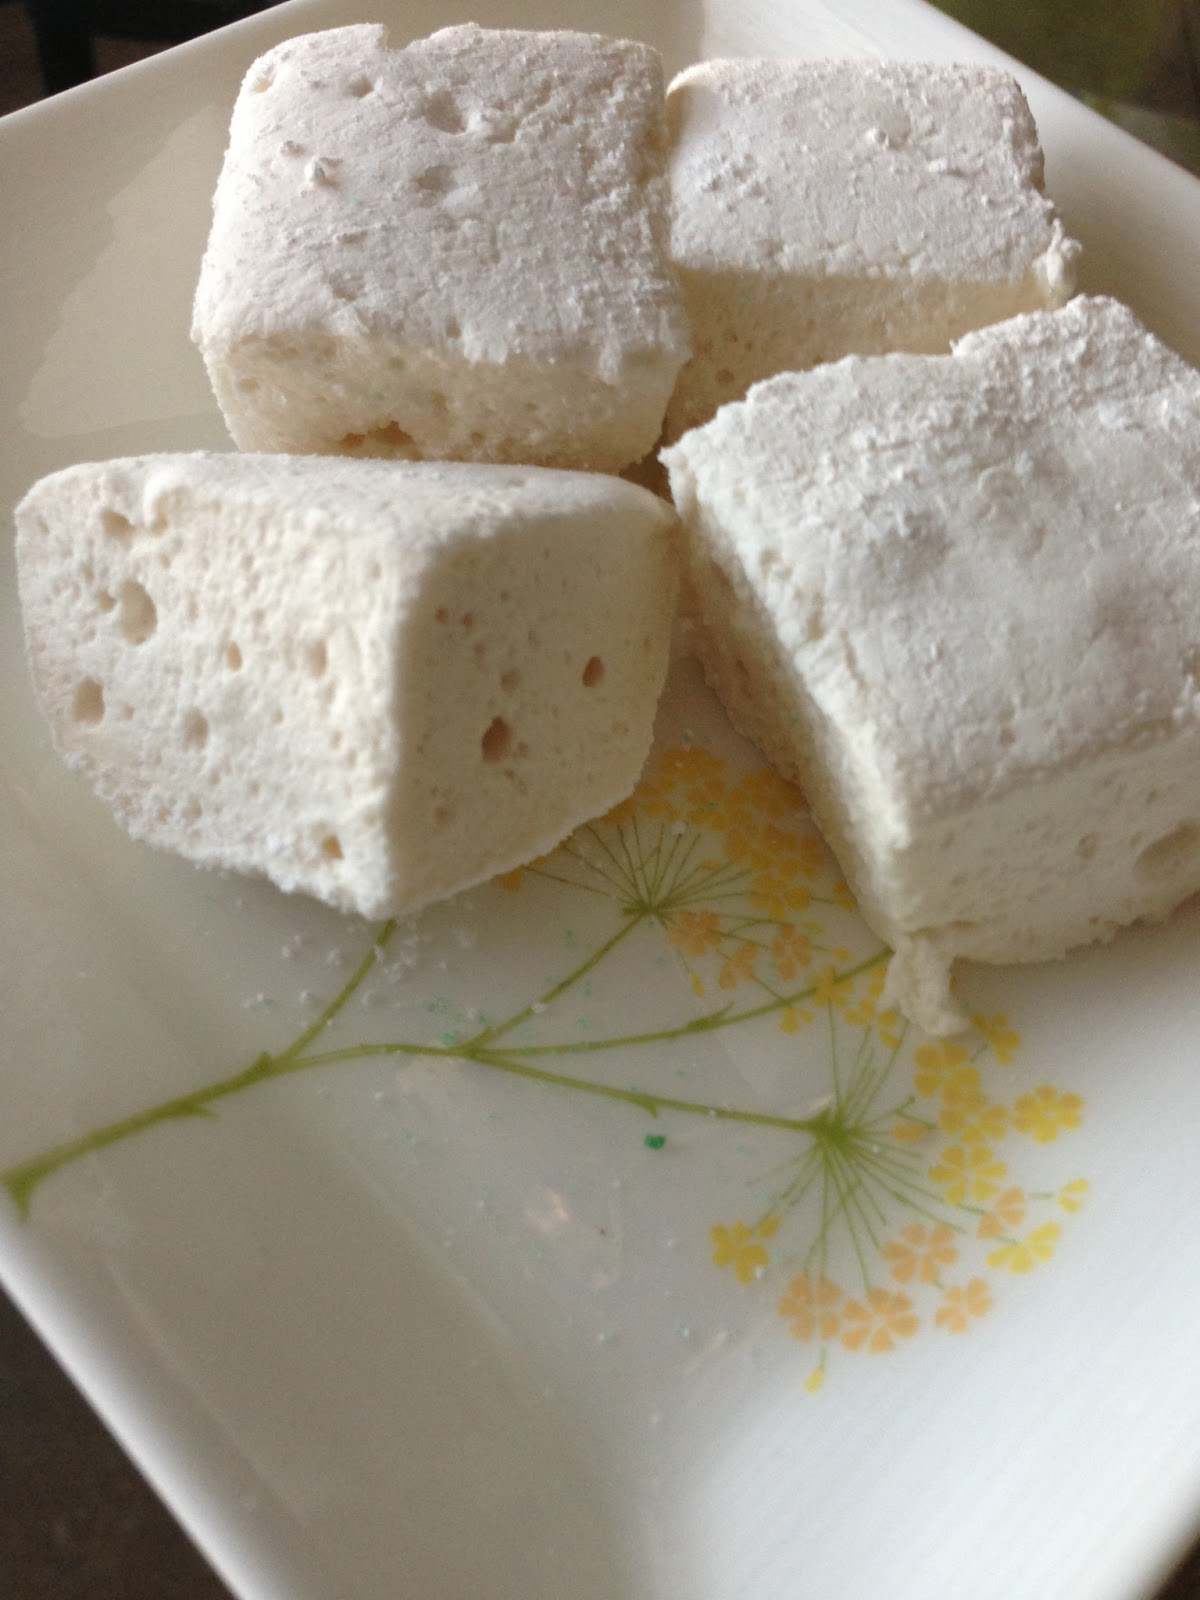 Homemade Agave Nectar Marshmallows | Getting Some Fun Out of Life